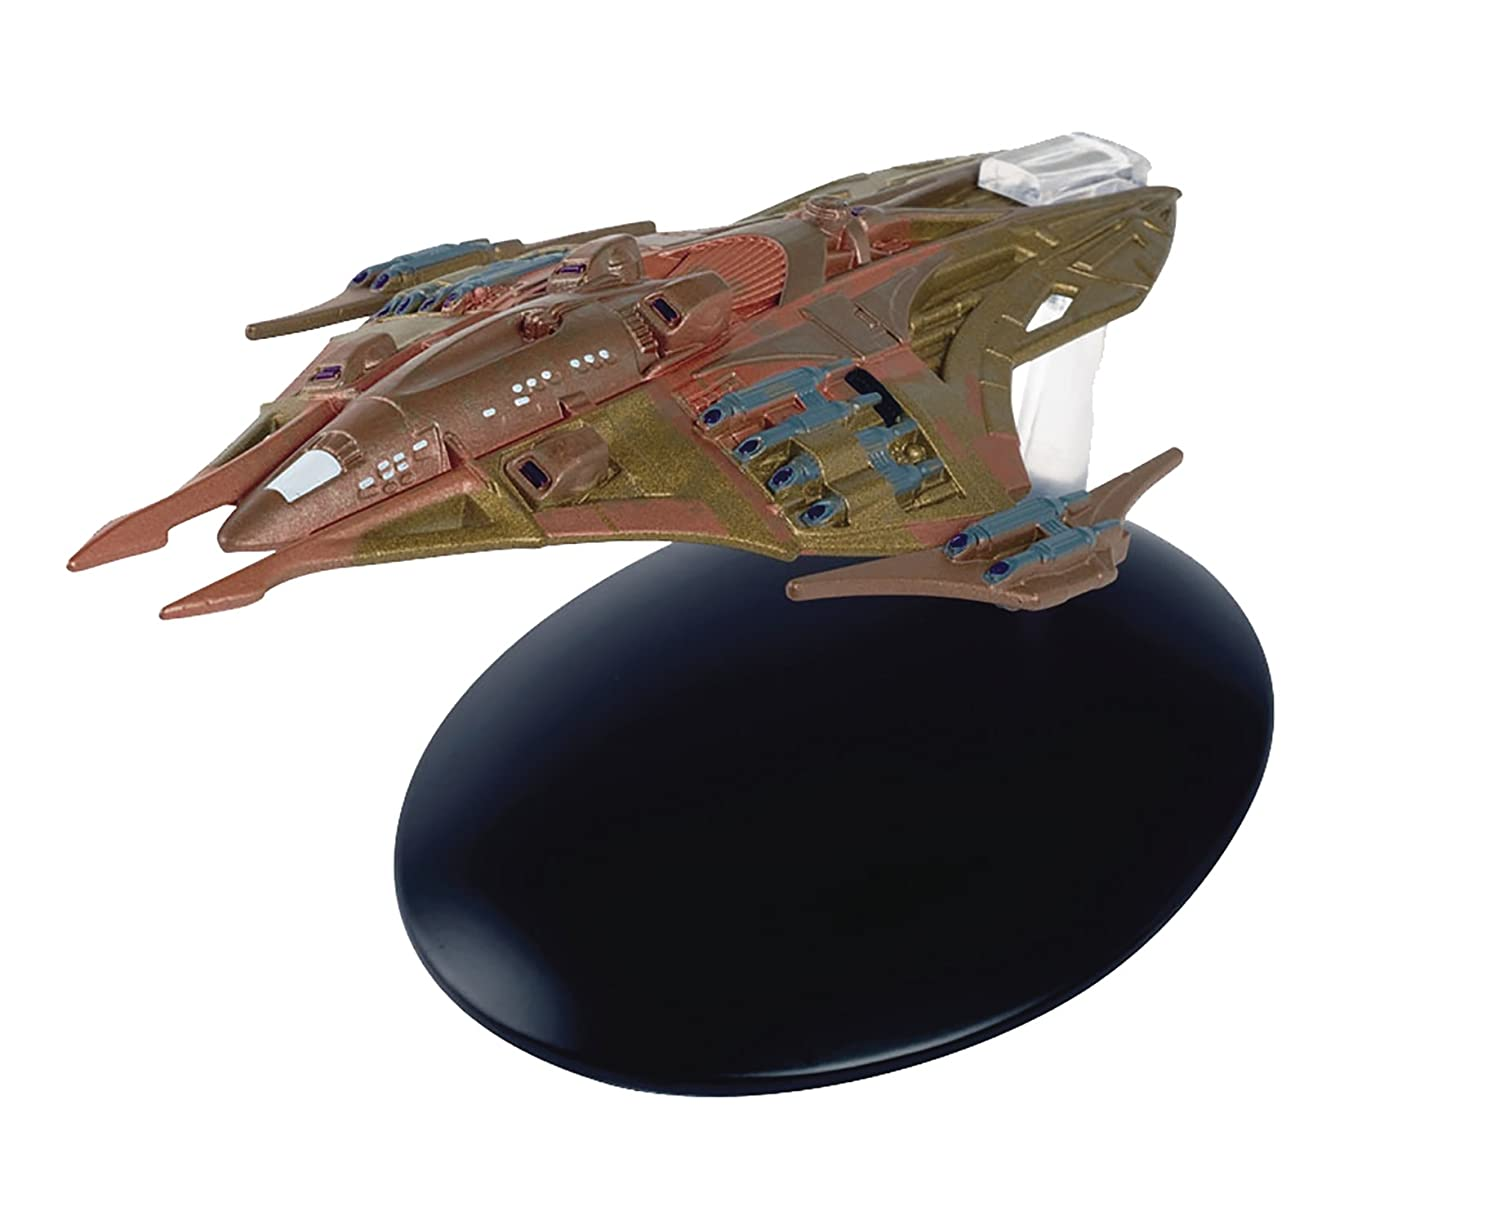 Star Trek Starships Vehicle & Collectors Magazine #113: Lokirrim Warship Eaglemoss